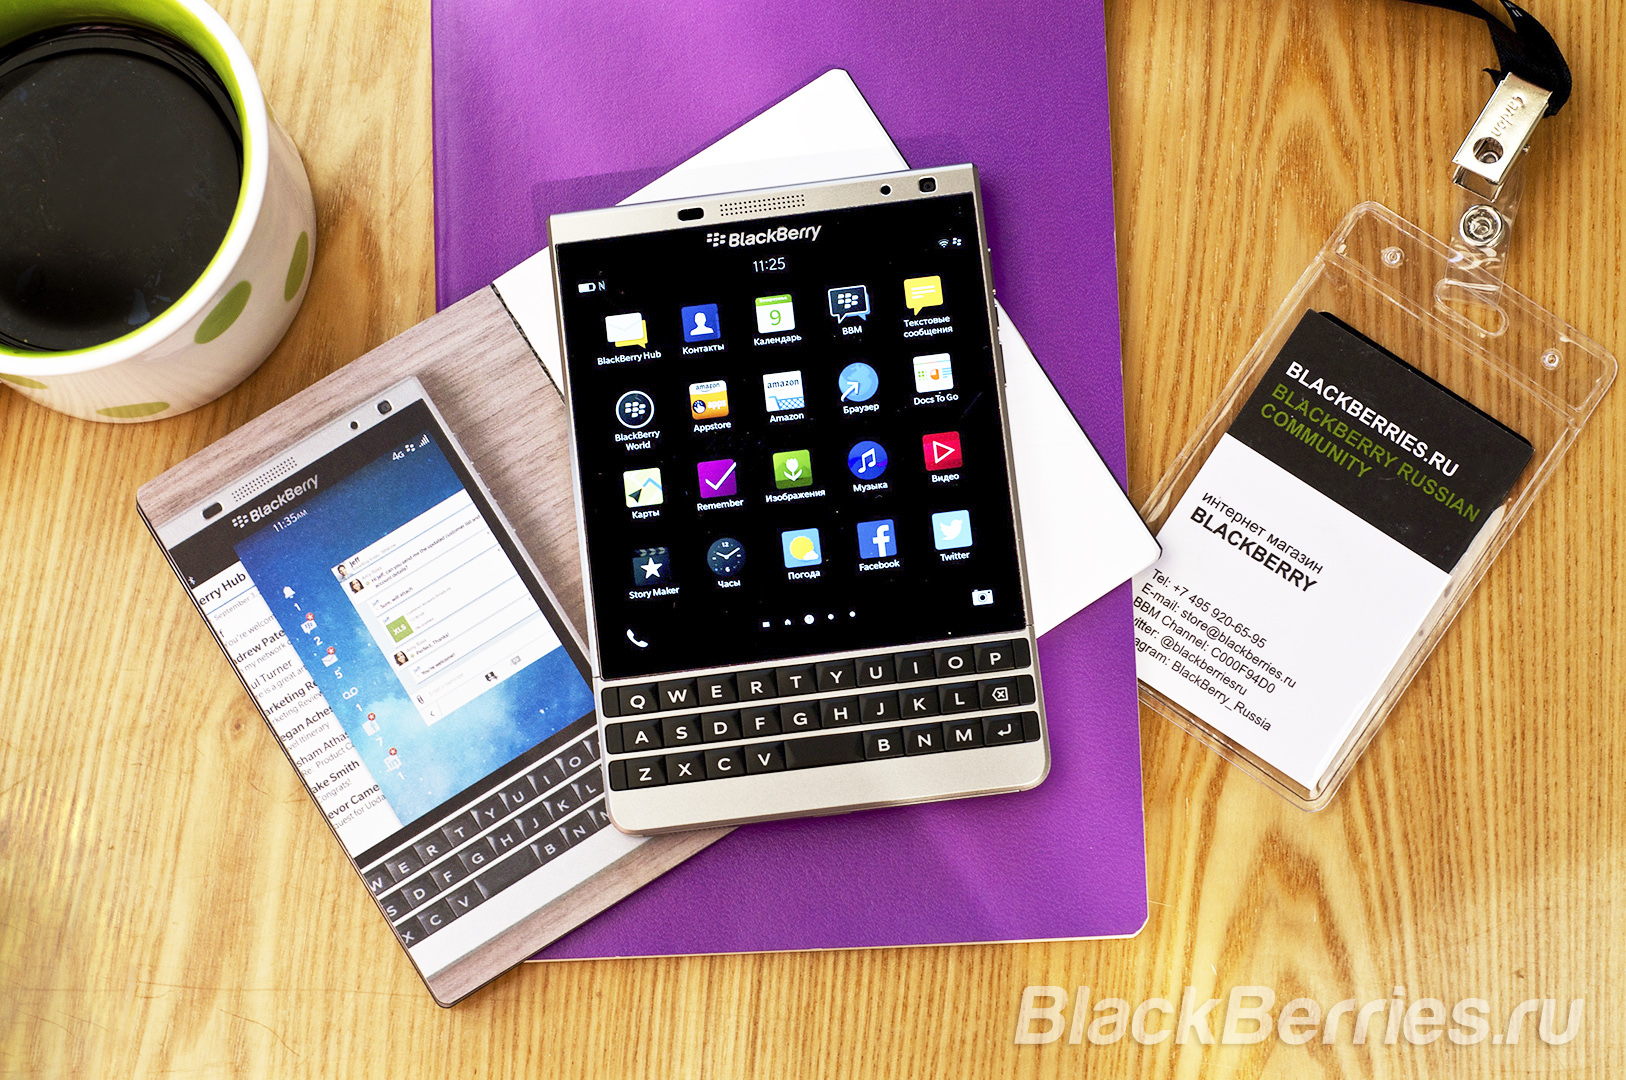 BlackBerry-Passport-Silver-Edition-Review-291